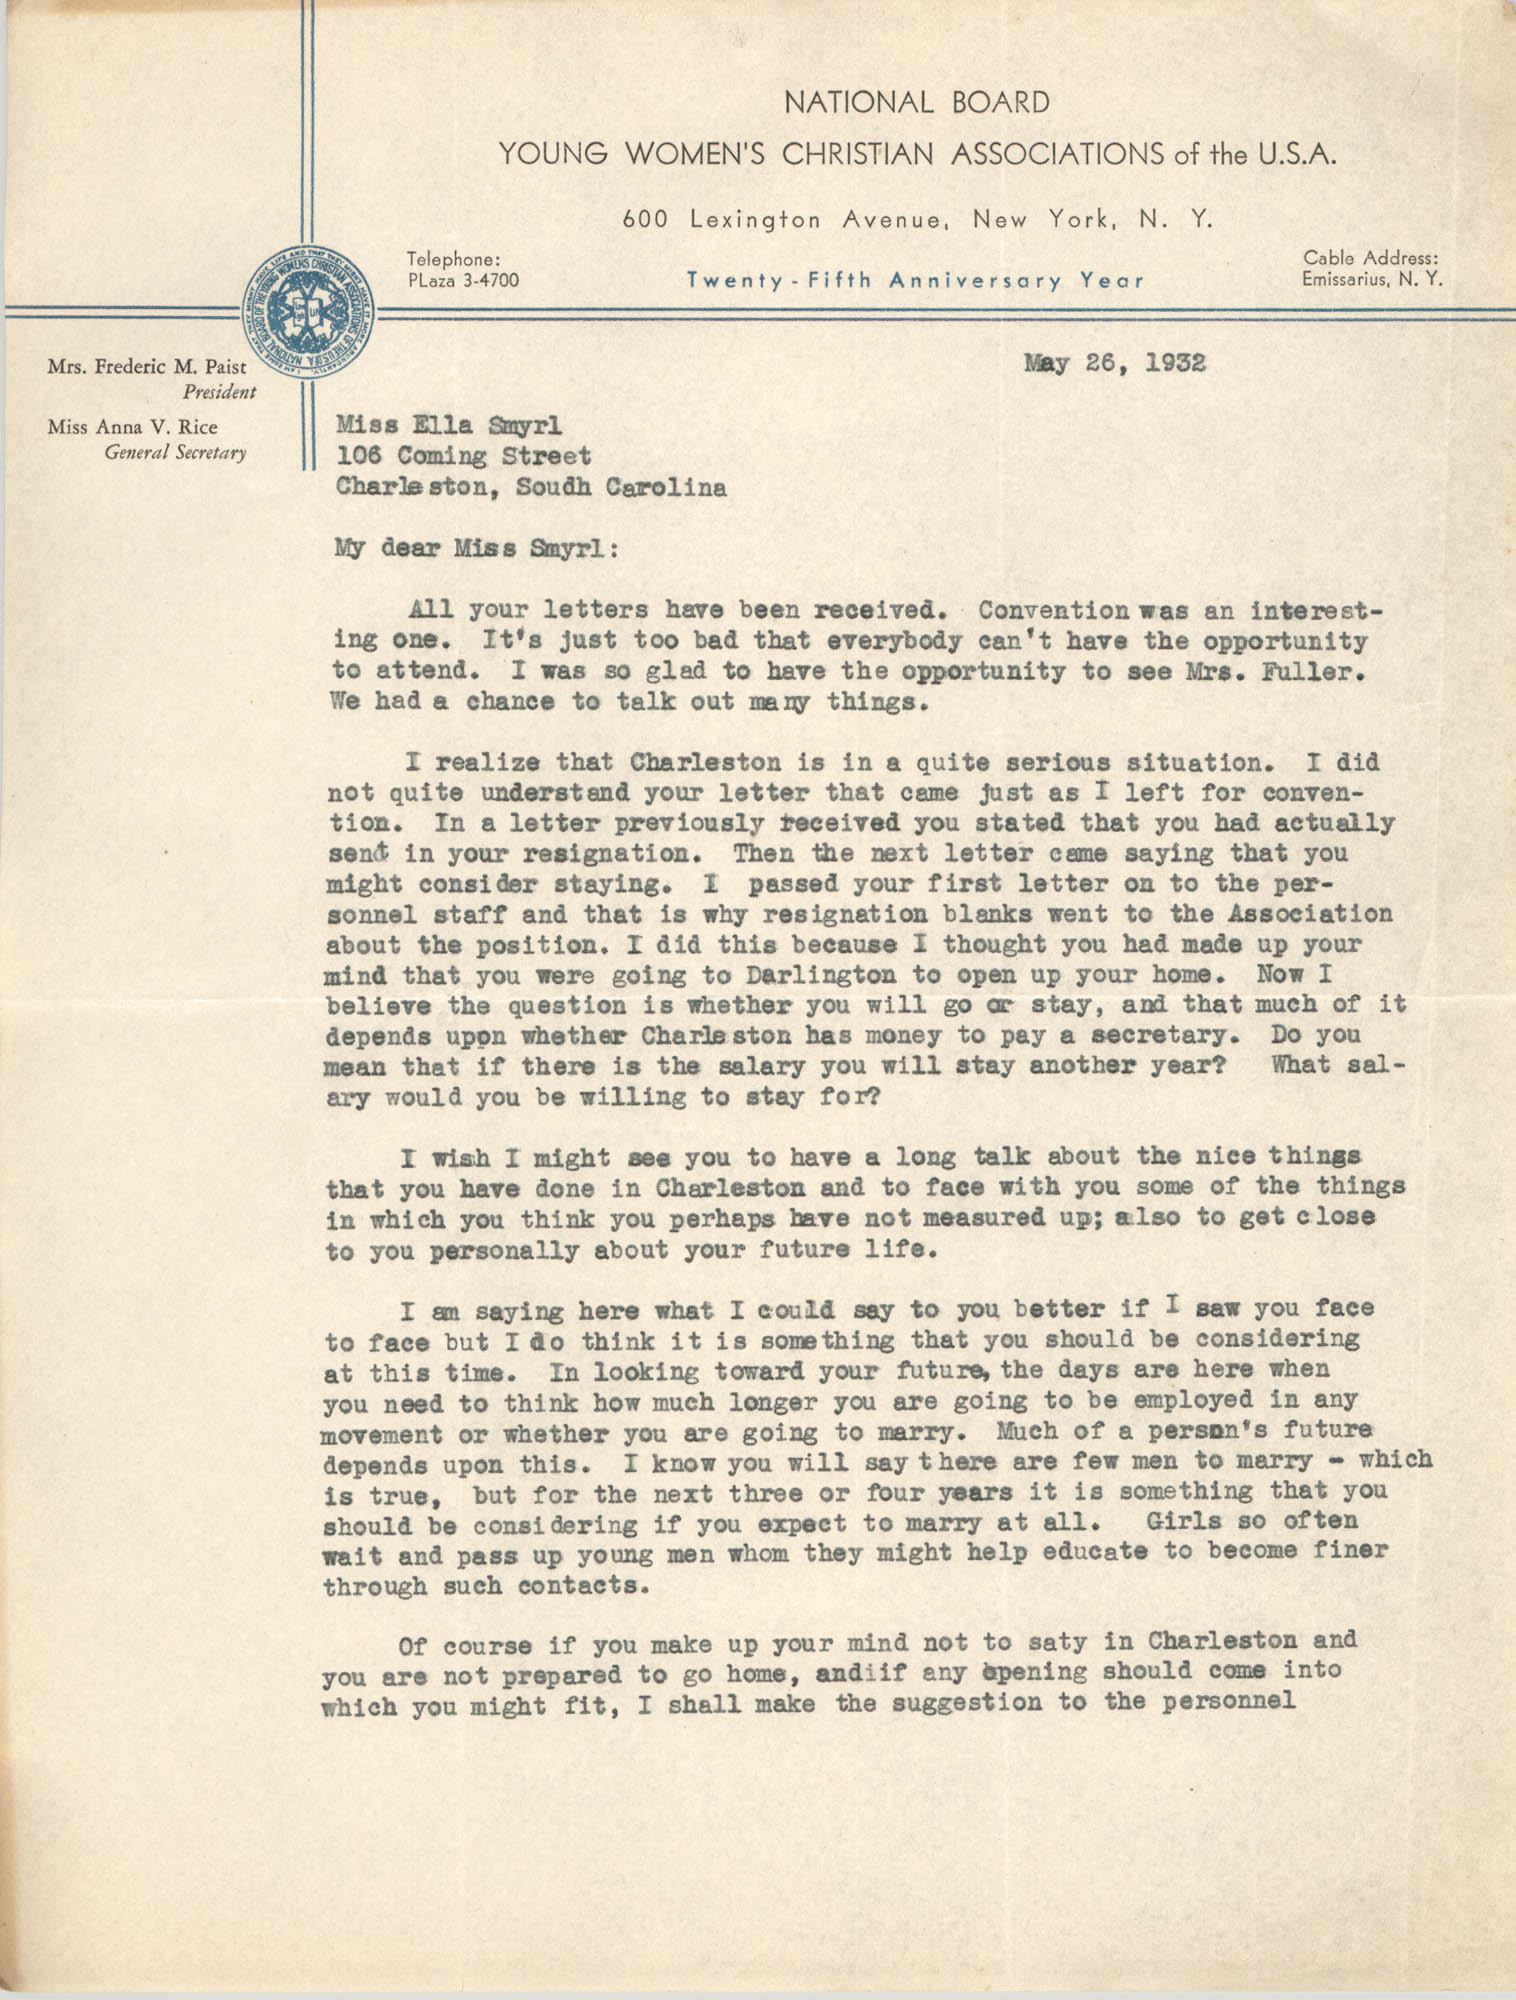 Letter from Cordella A. Winn and Ella L. Smyrl, May 26, 1932